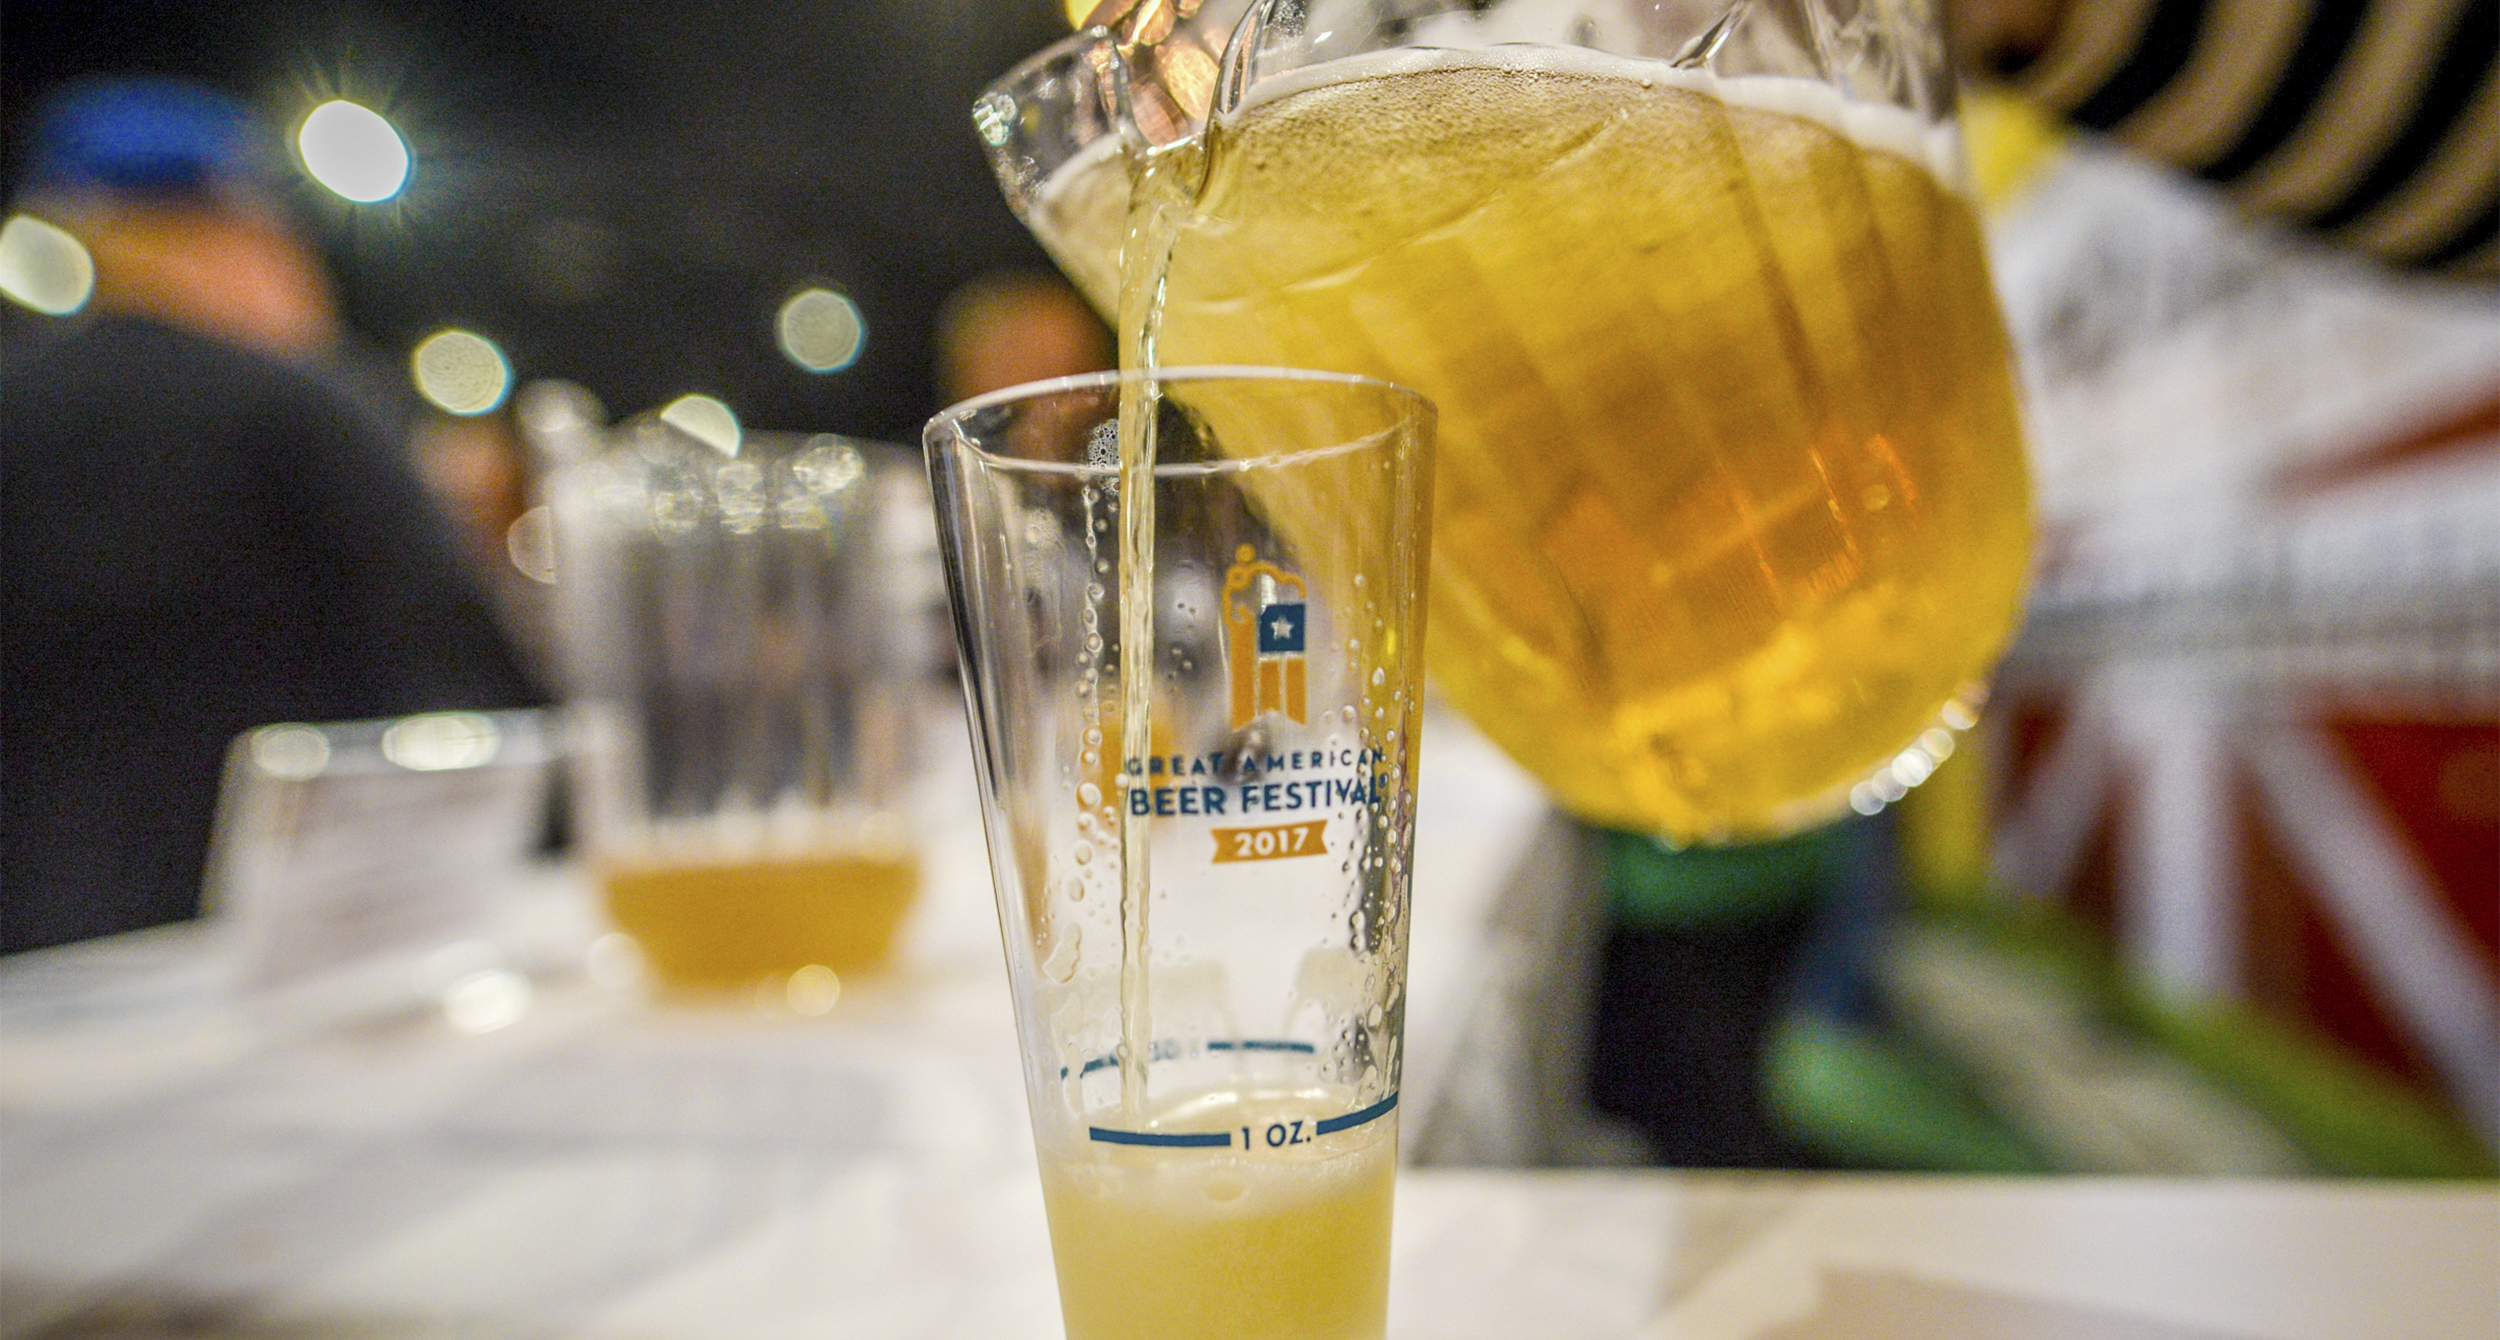 Five Minnesota breweries won six medals at the 2017 Great American Beer Festival // Photo © 2017 Jason E. Kaplan